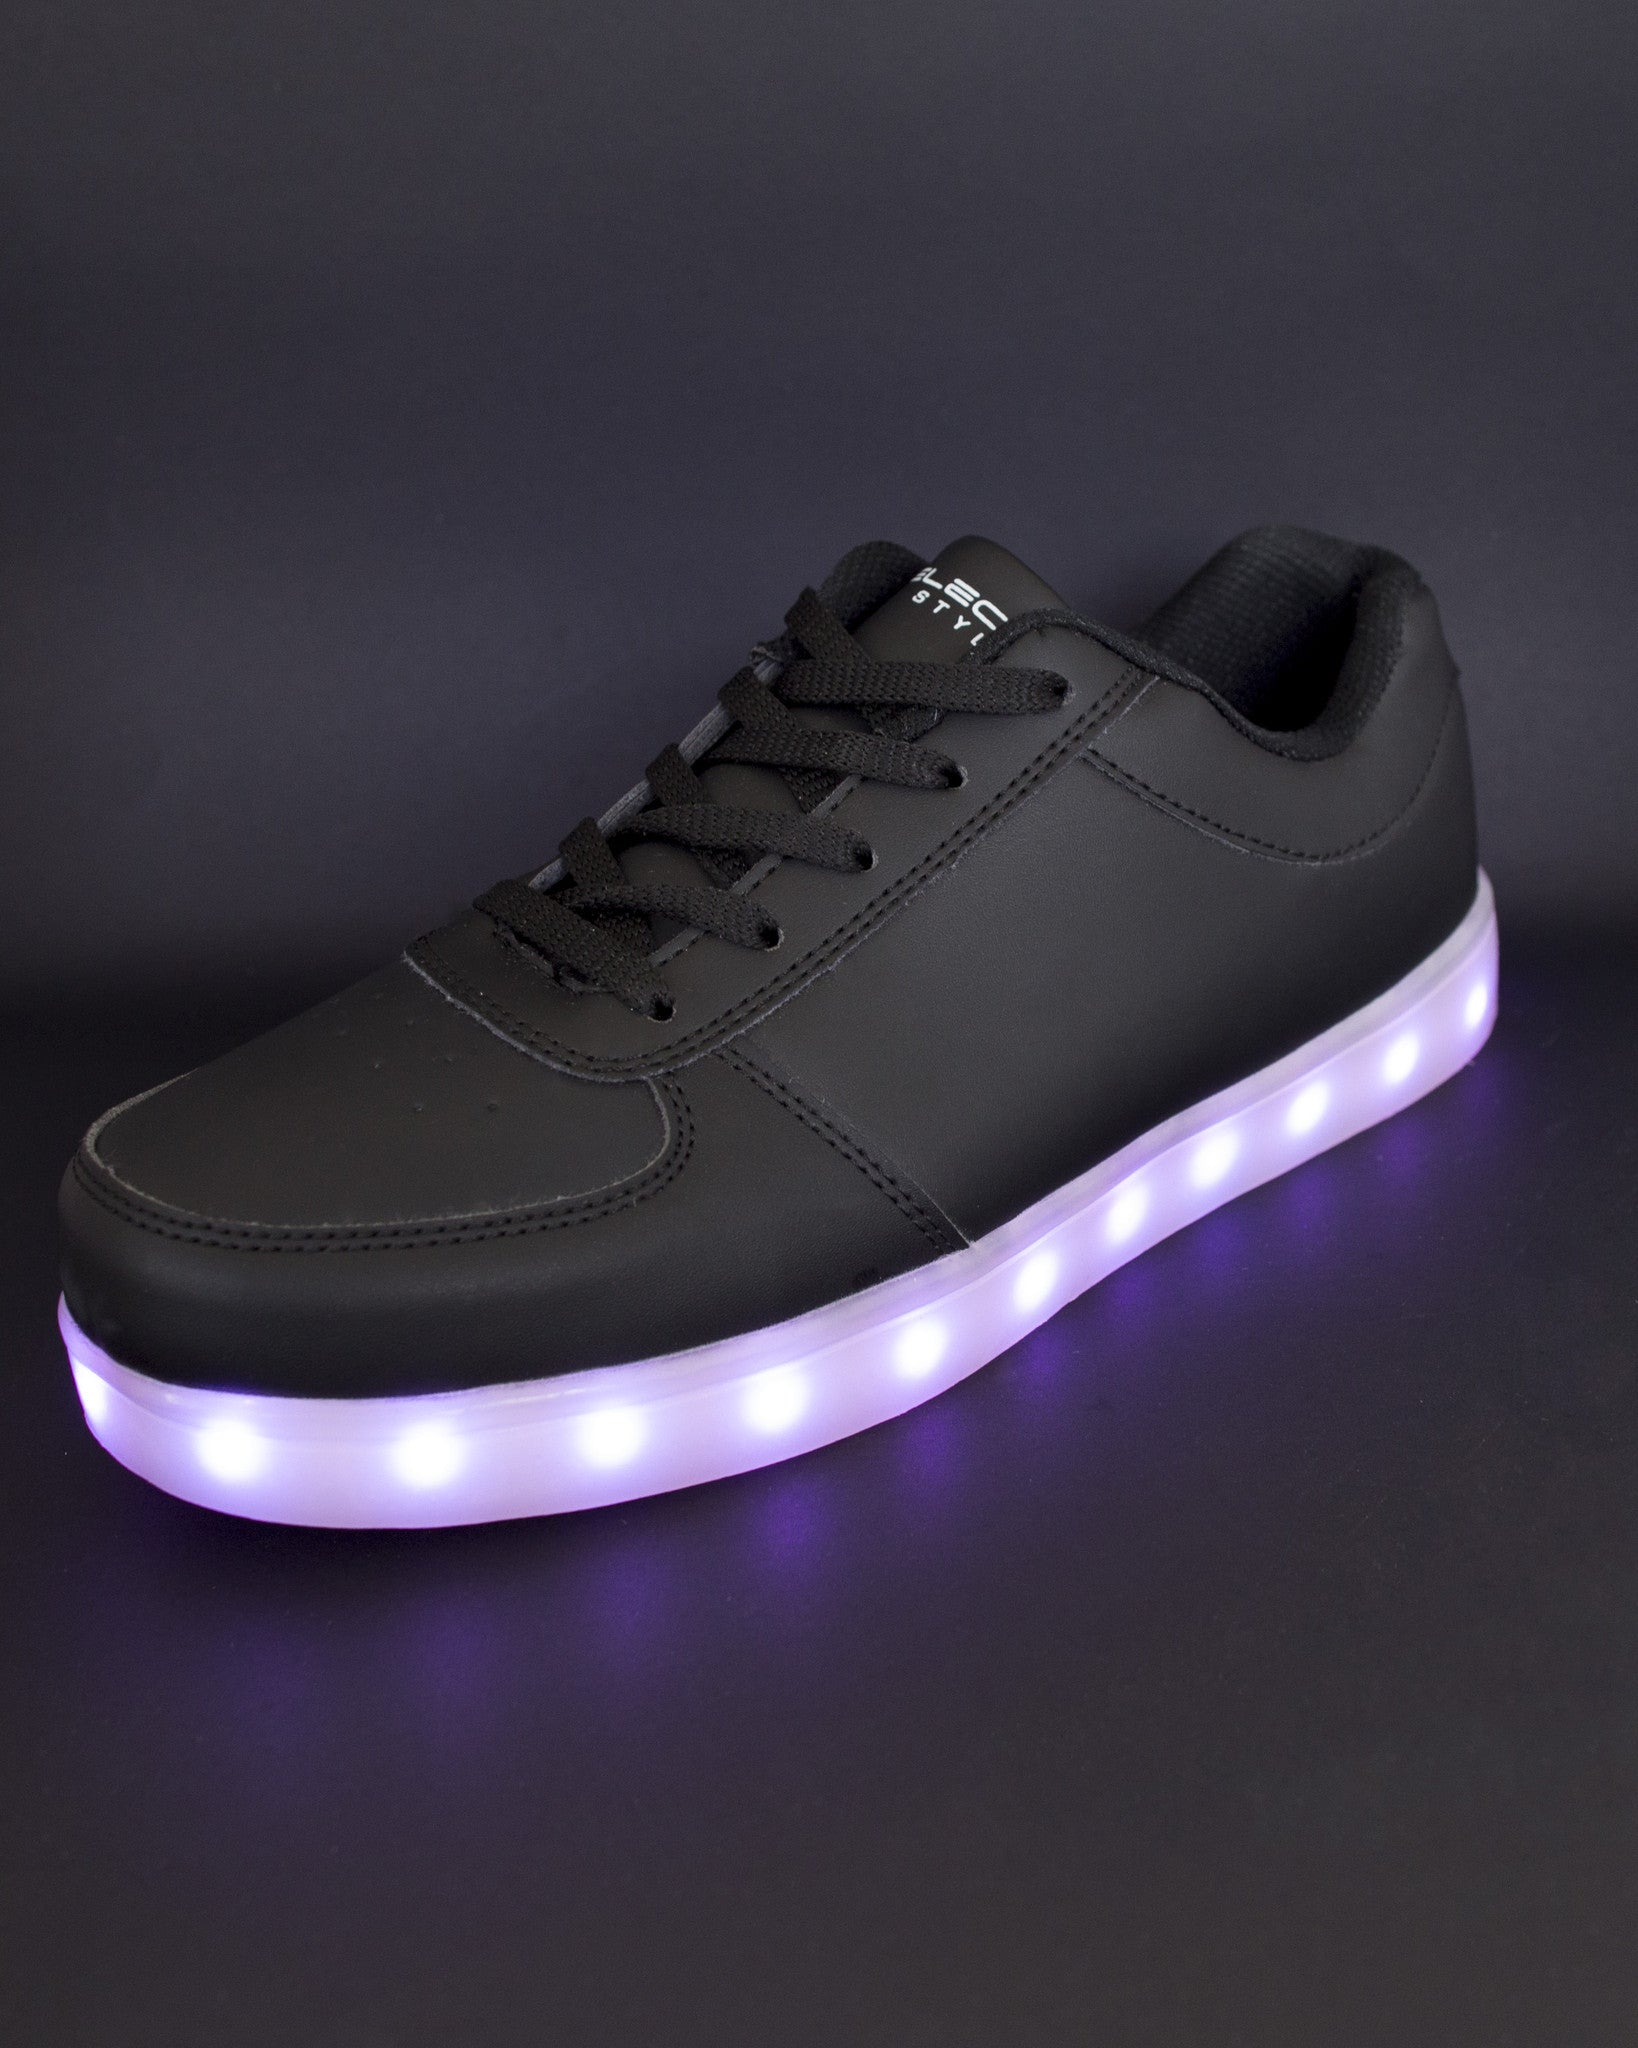 Light Up Shoes - All Black - Electric Styles | World's Number 1 Light Up Shoe Store - {product_type}} -  - 2